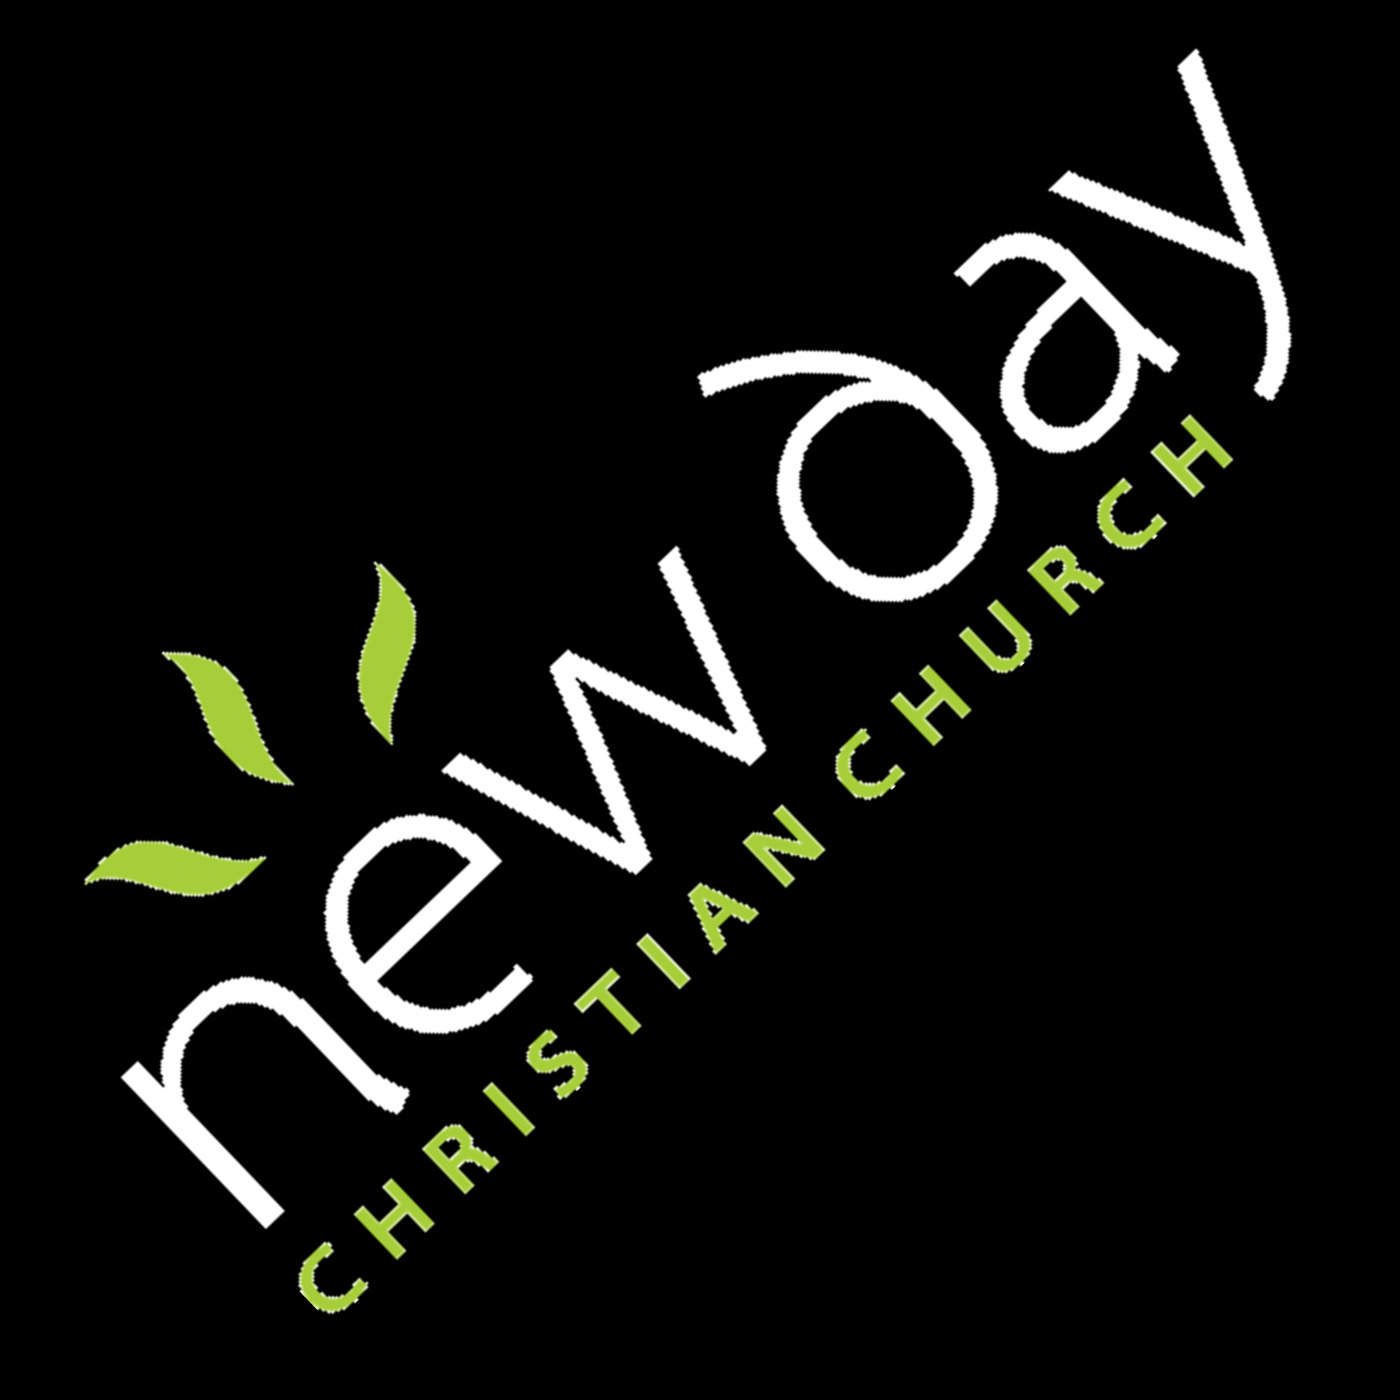 New Day Christian Church Podcast